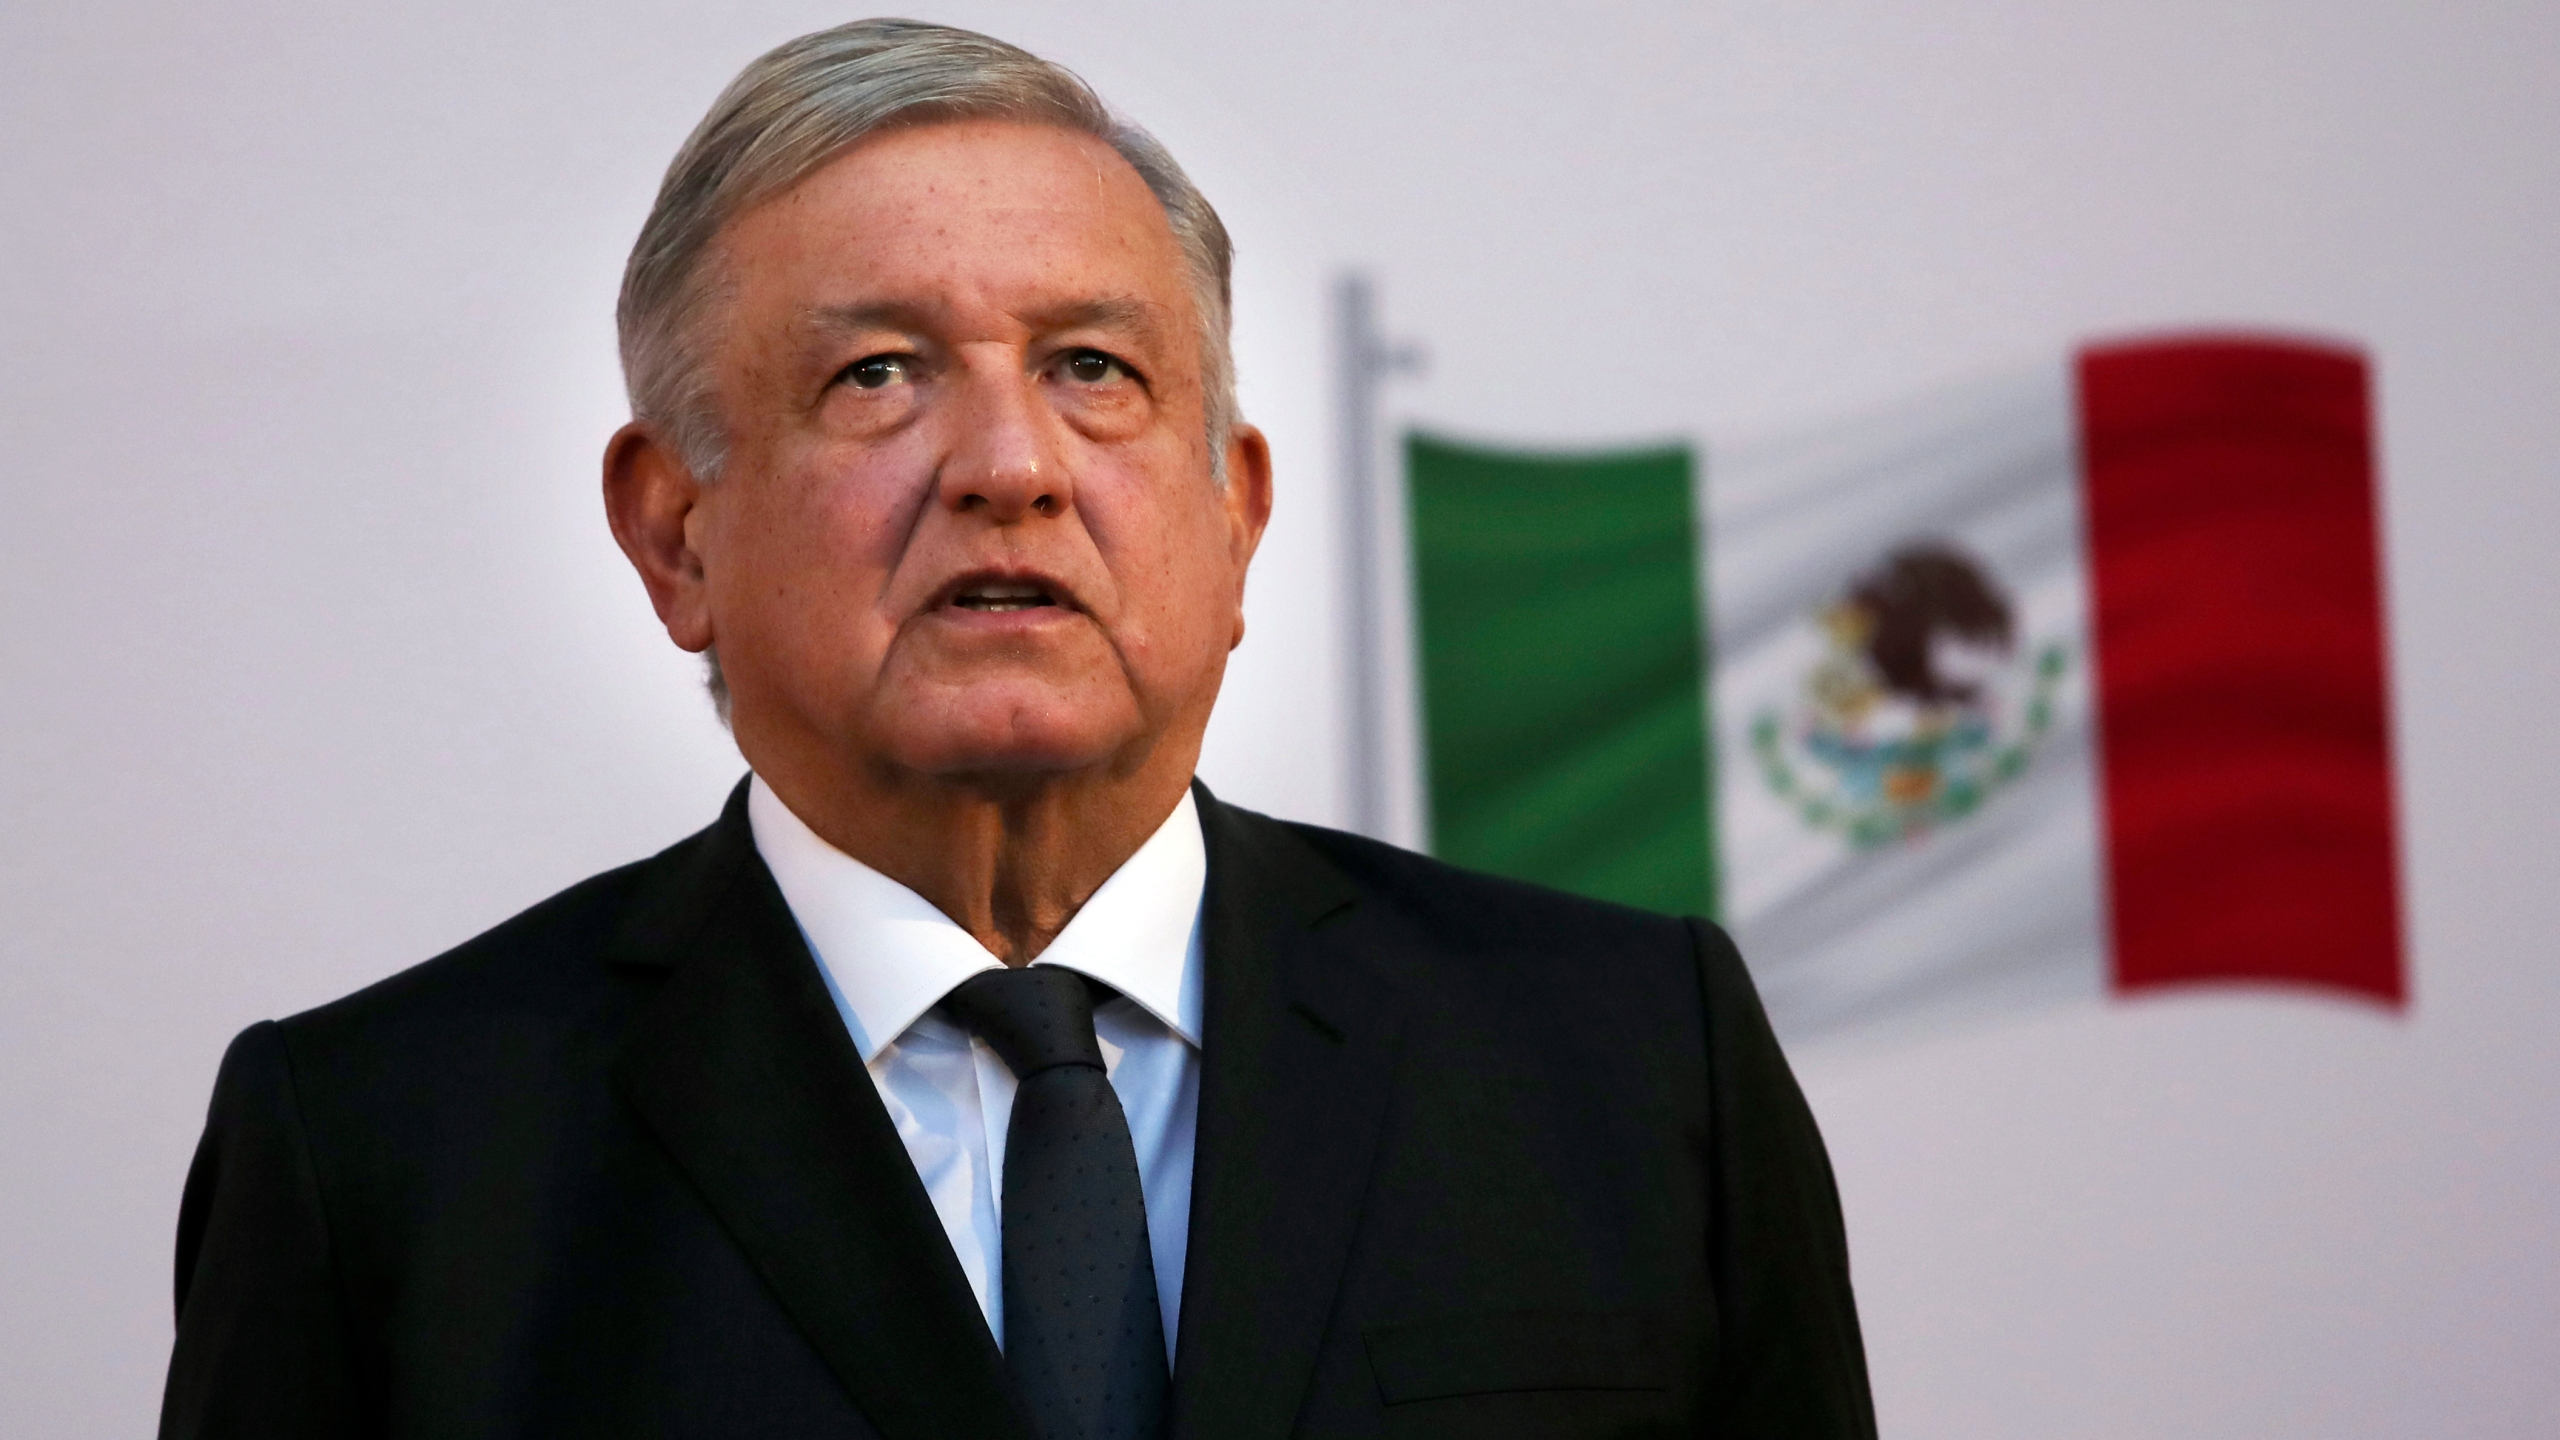 In this Dec. 1, 2020 file photo, Mexican President Andrés Manuel López Obrador attends the commemoration of his second anniversary in office at the National Palace in Mexico City. (AP Photo/Marco Ugarte)